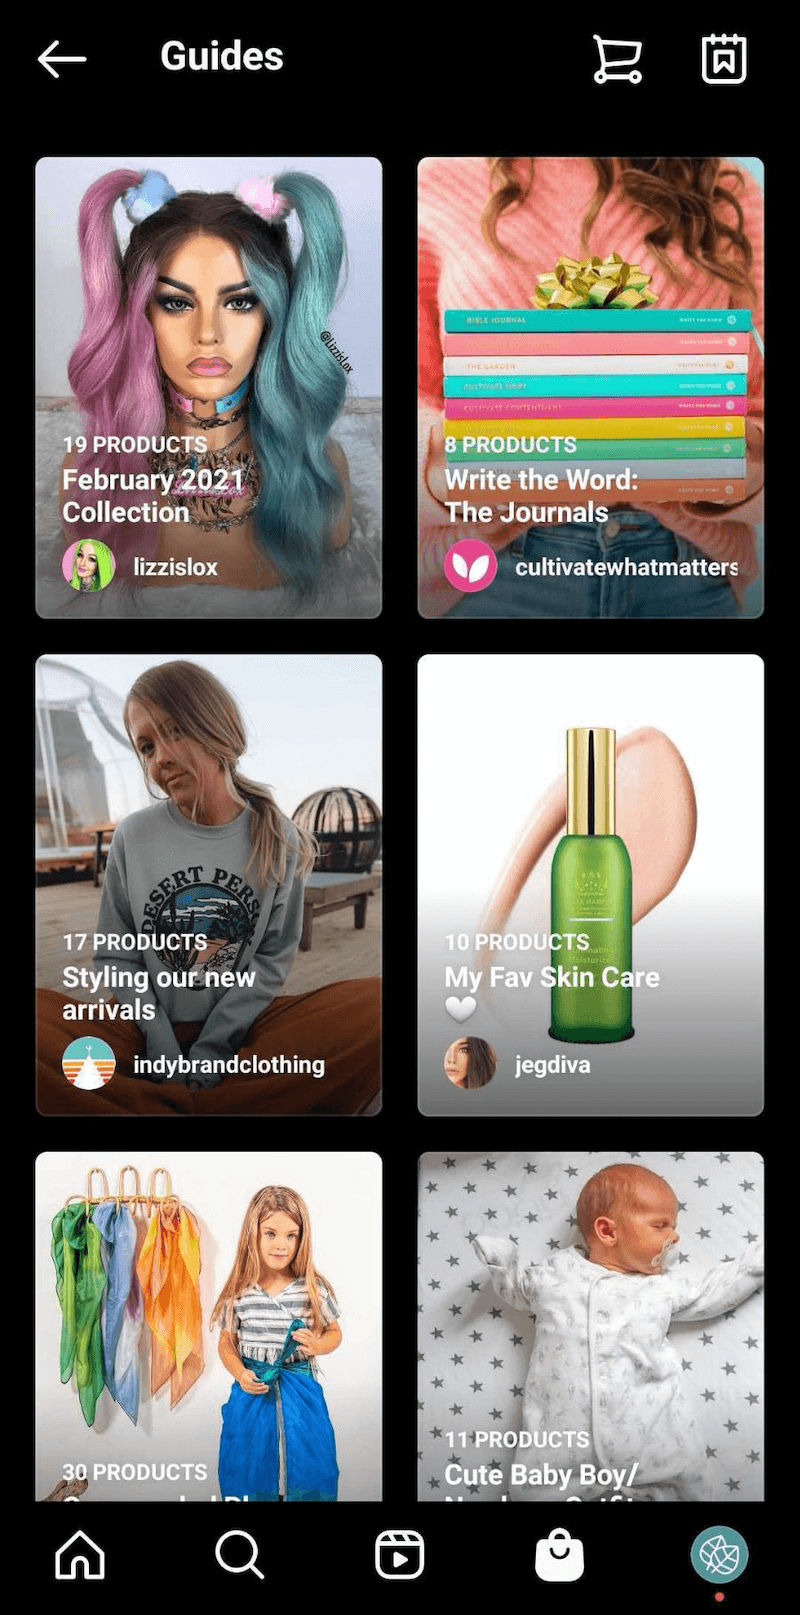 instagram guides on explore tab